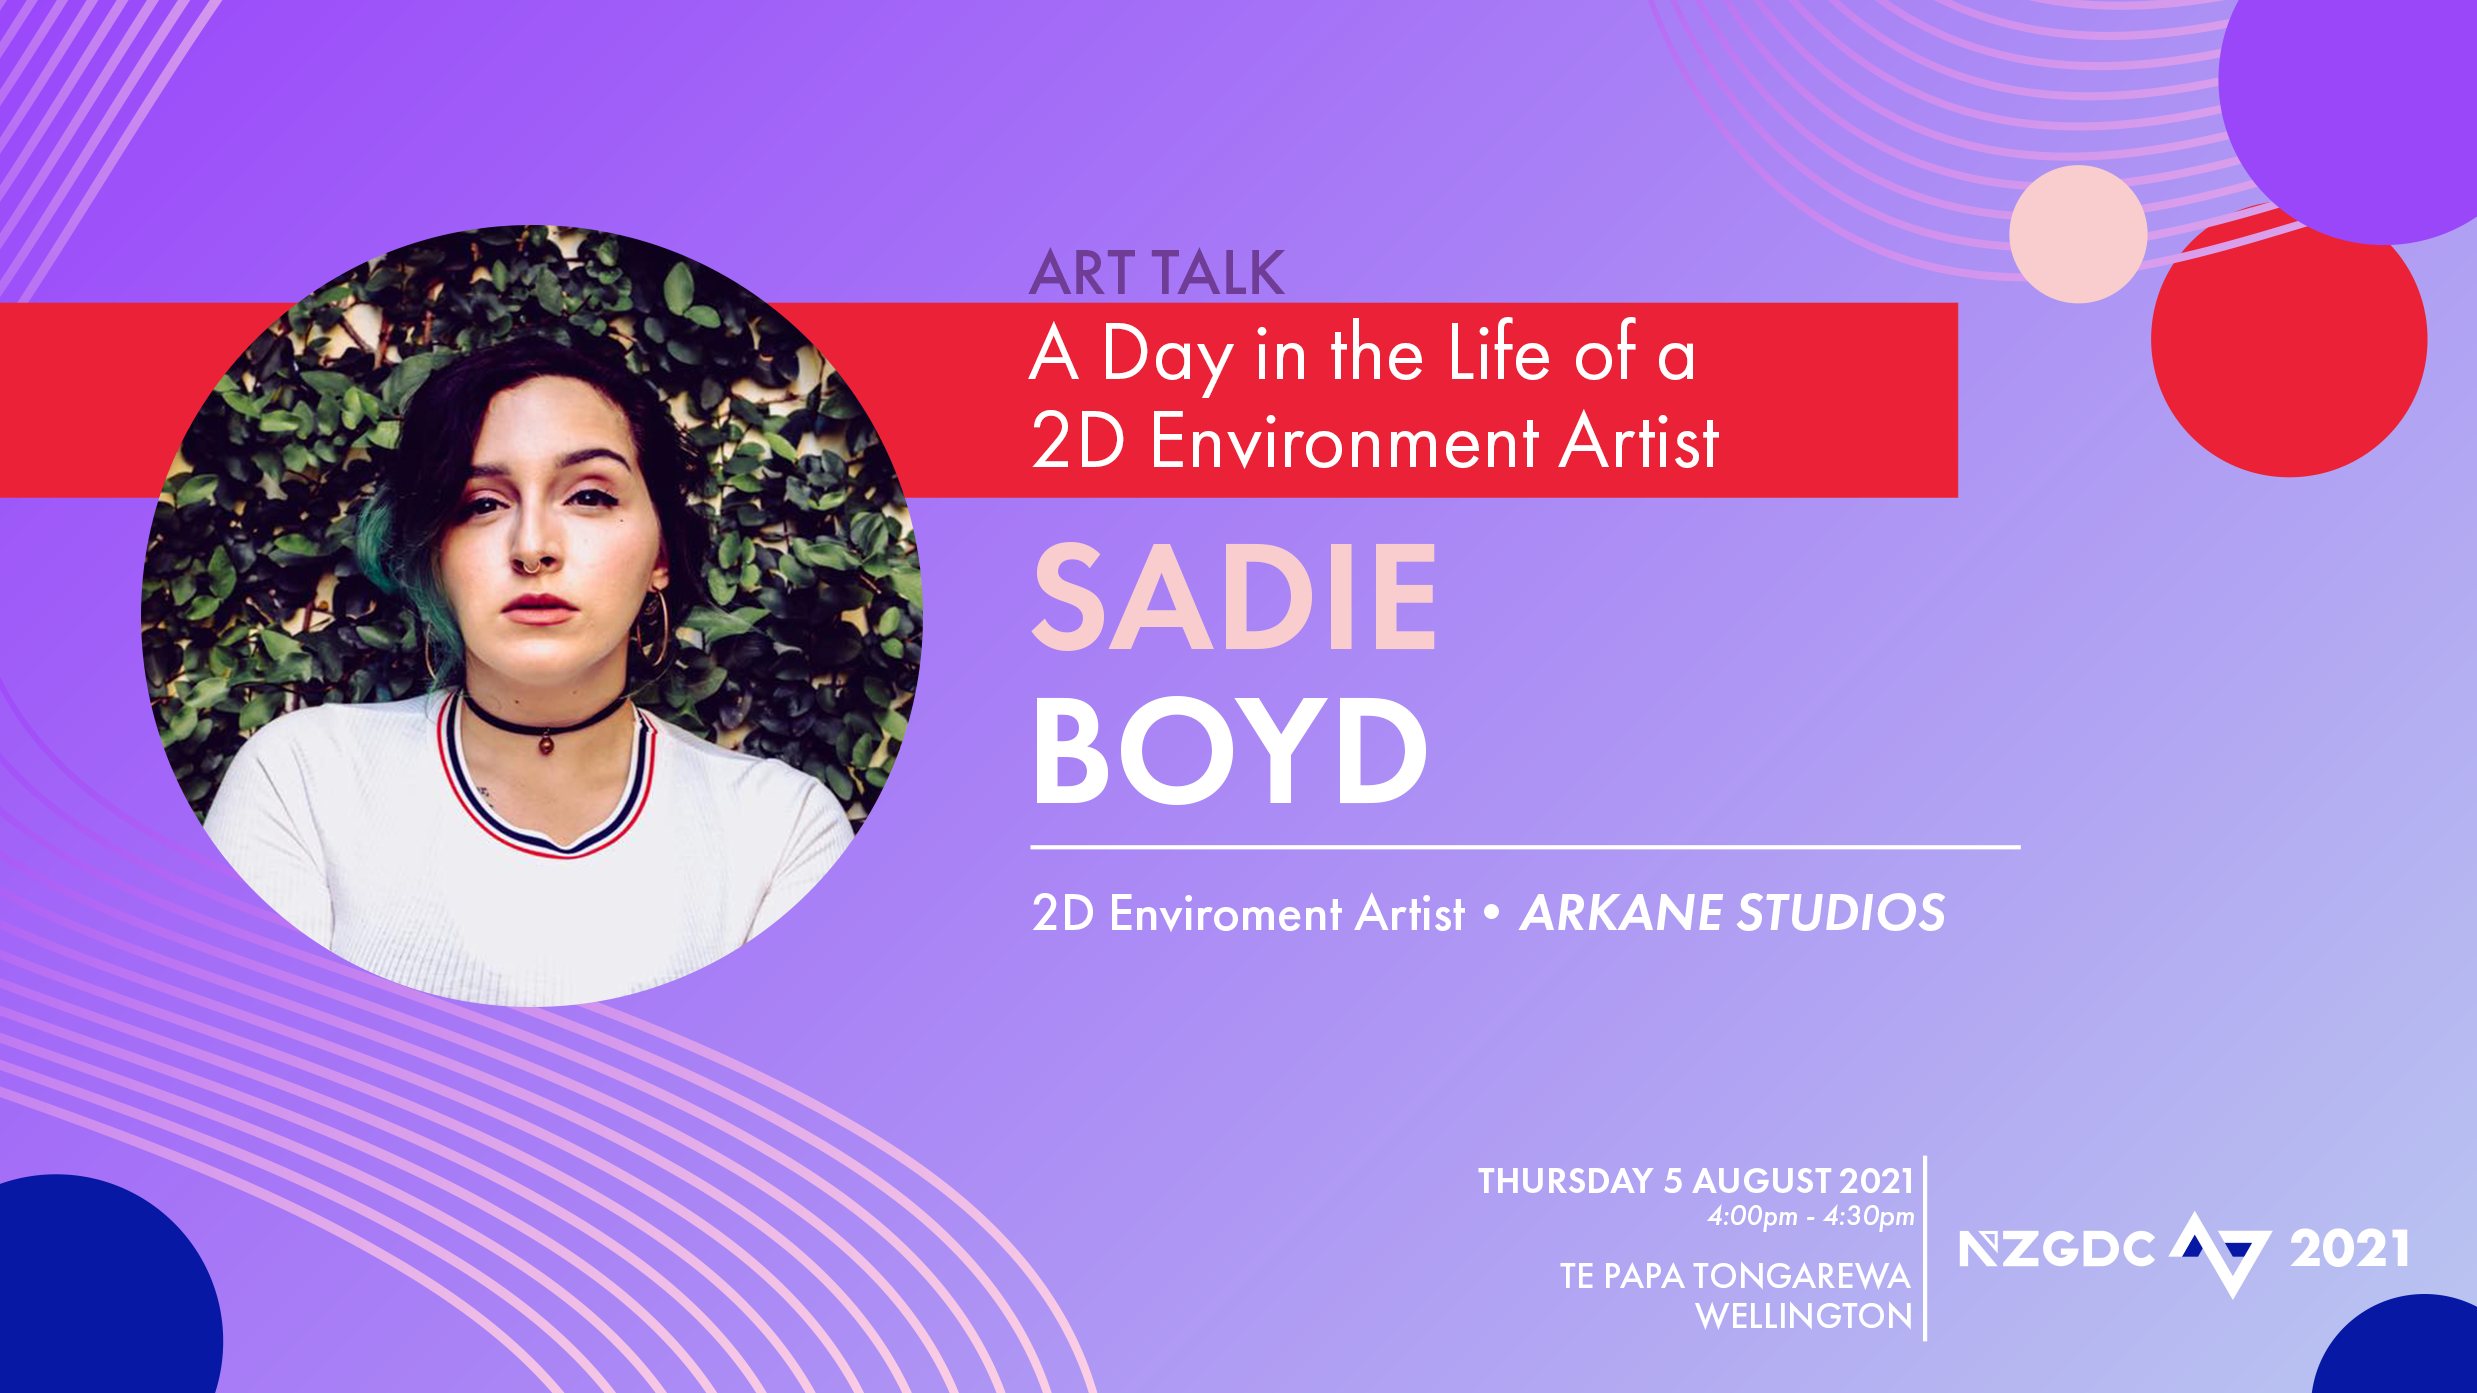 A Day in the Life of a 2D Environment Artist